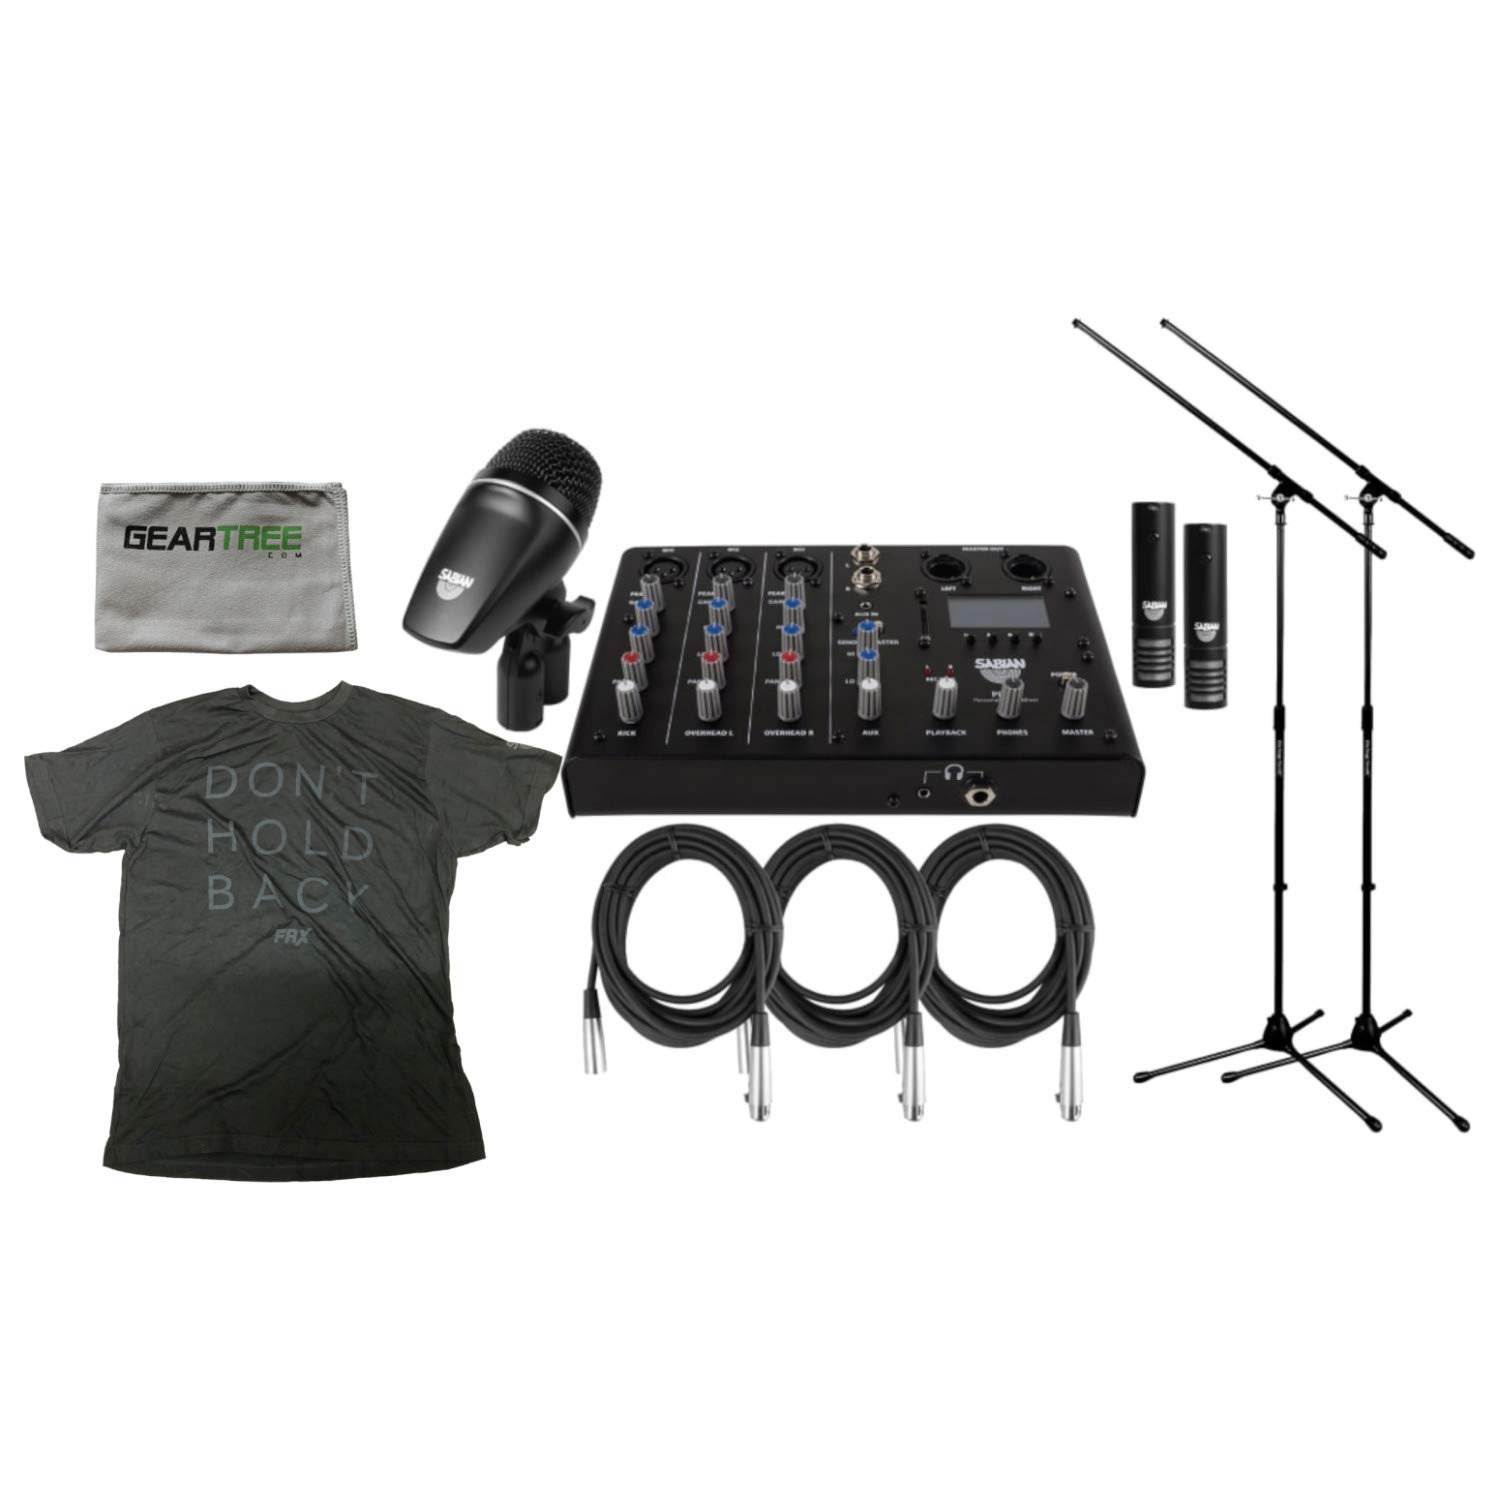 Sabian SSKIT 4 Piece Drum Mic & Mixer Kit w/ 2 Mic Boom Stands and 3 XLR Mic Cables by Sabian